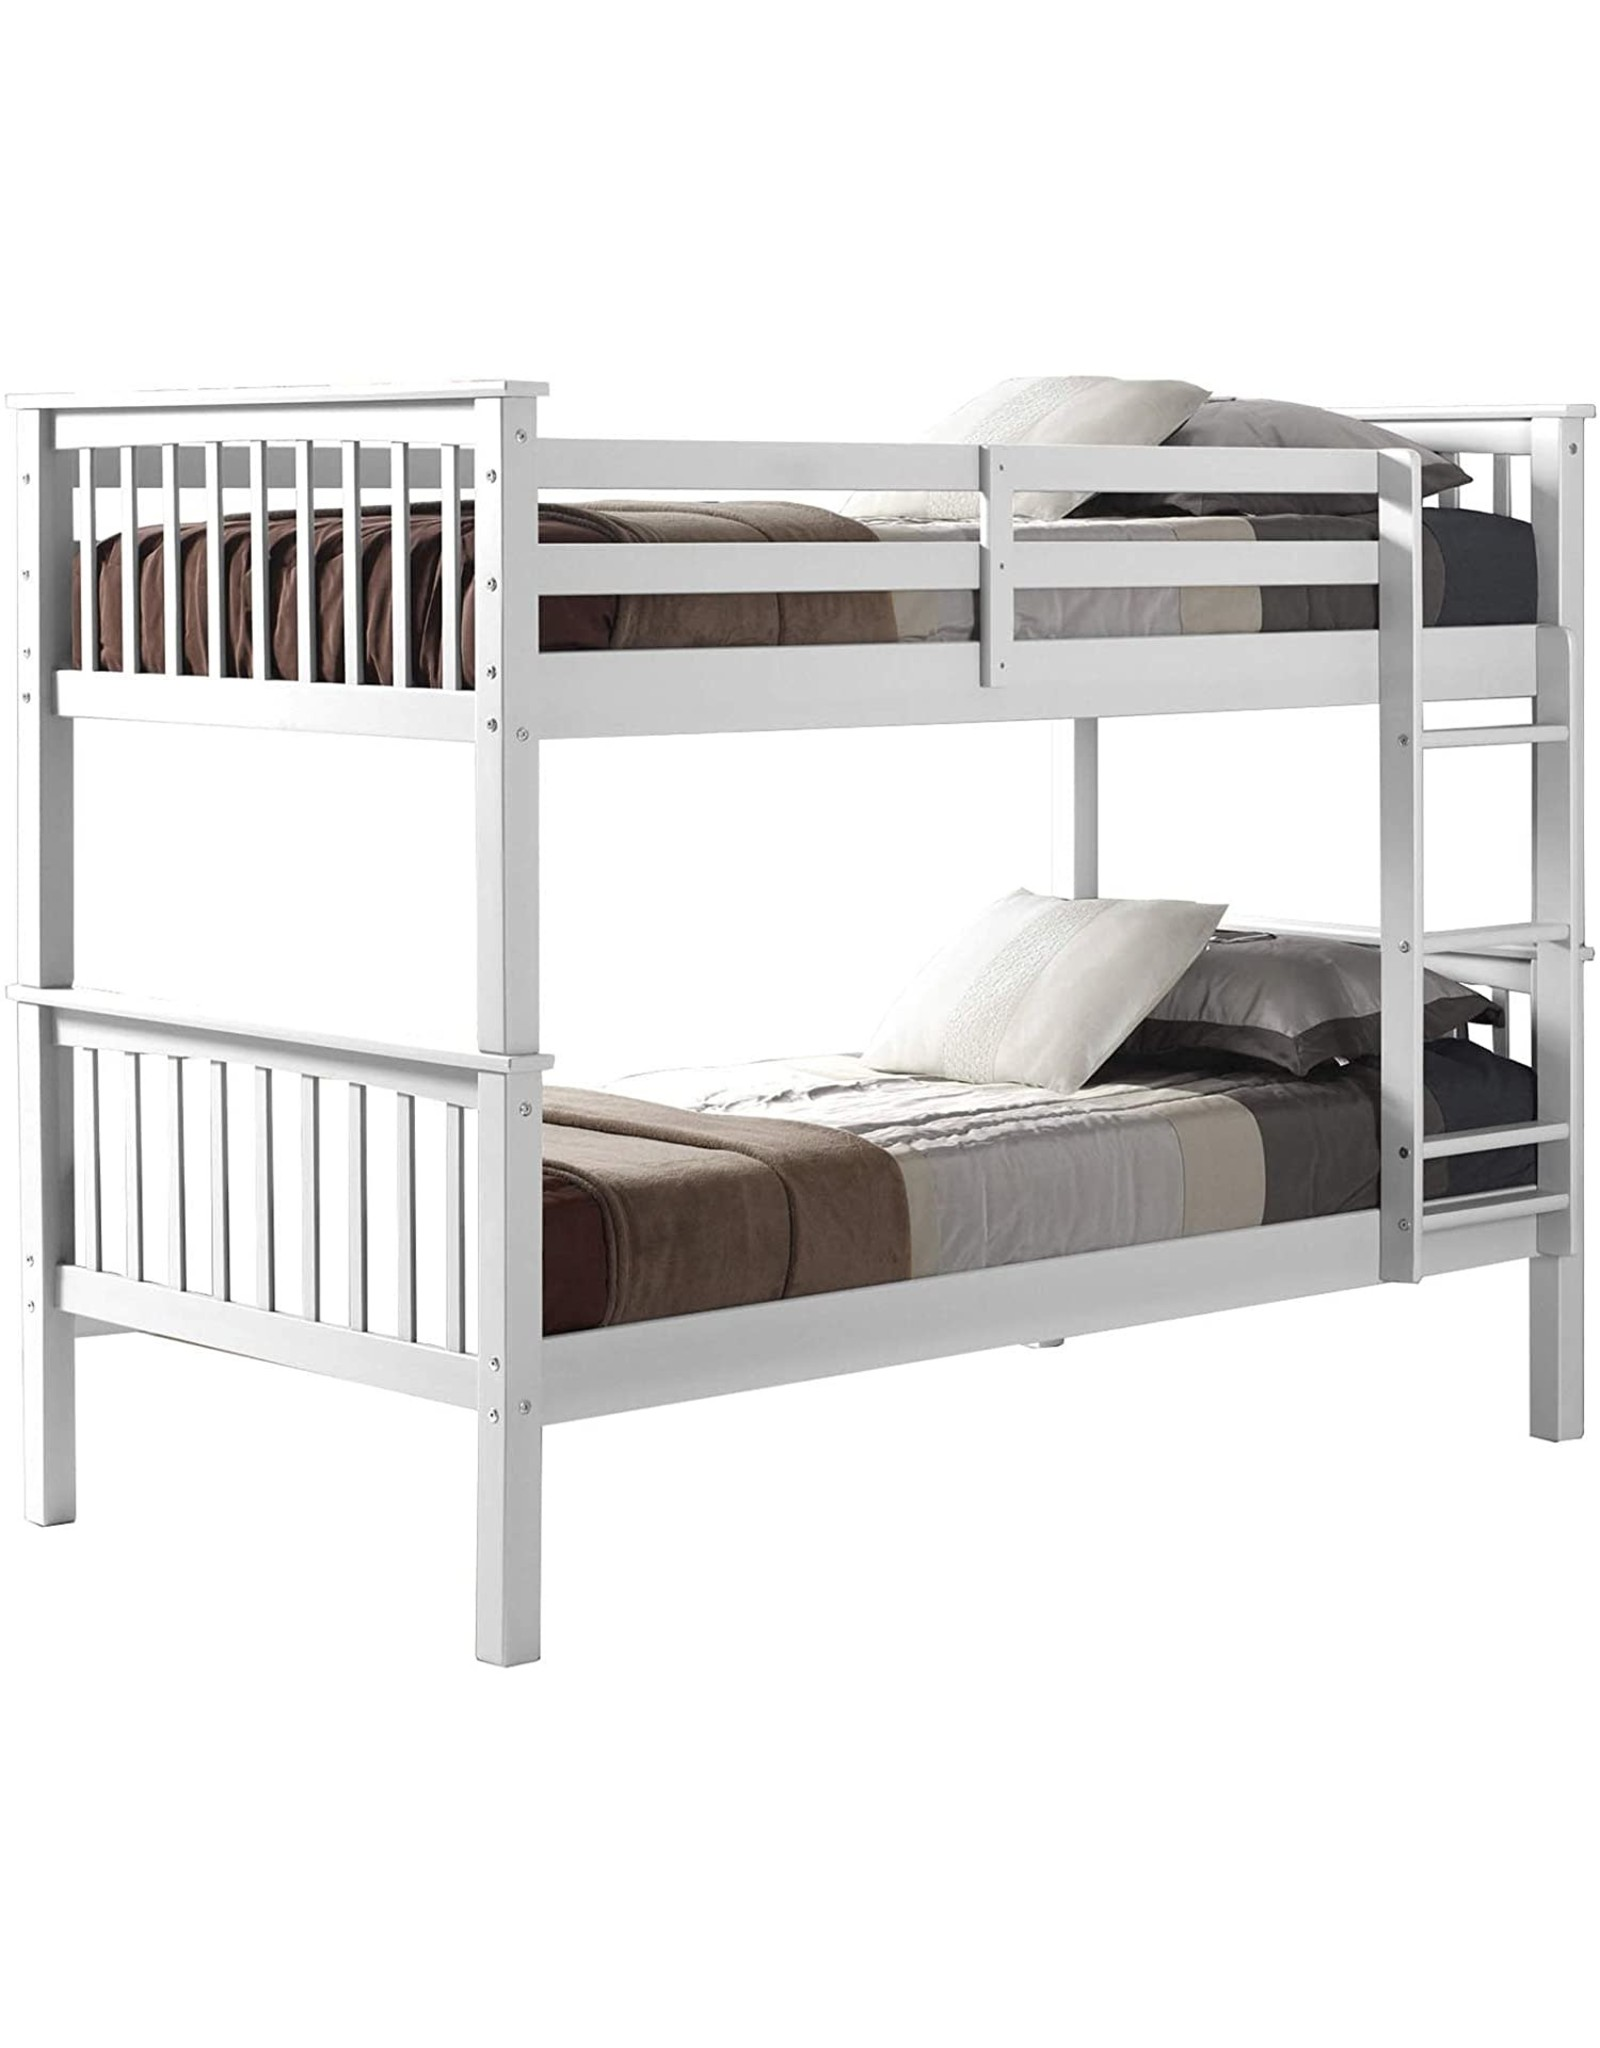 Walker Edison Walker Edison Resende Mission Style Solid Wood Twin over Twin Bunk Bed, Twin Over Twin, White